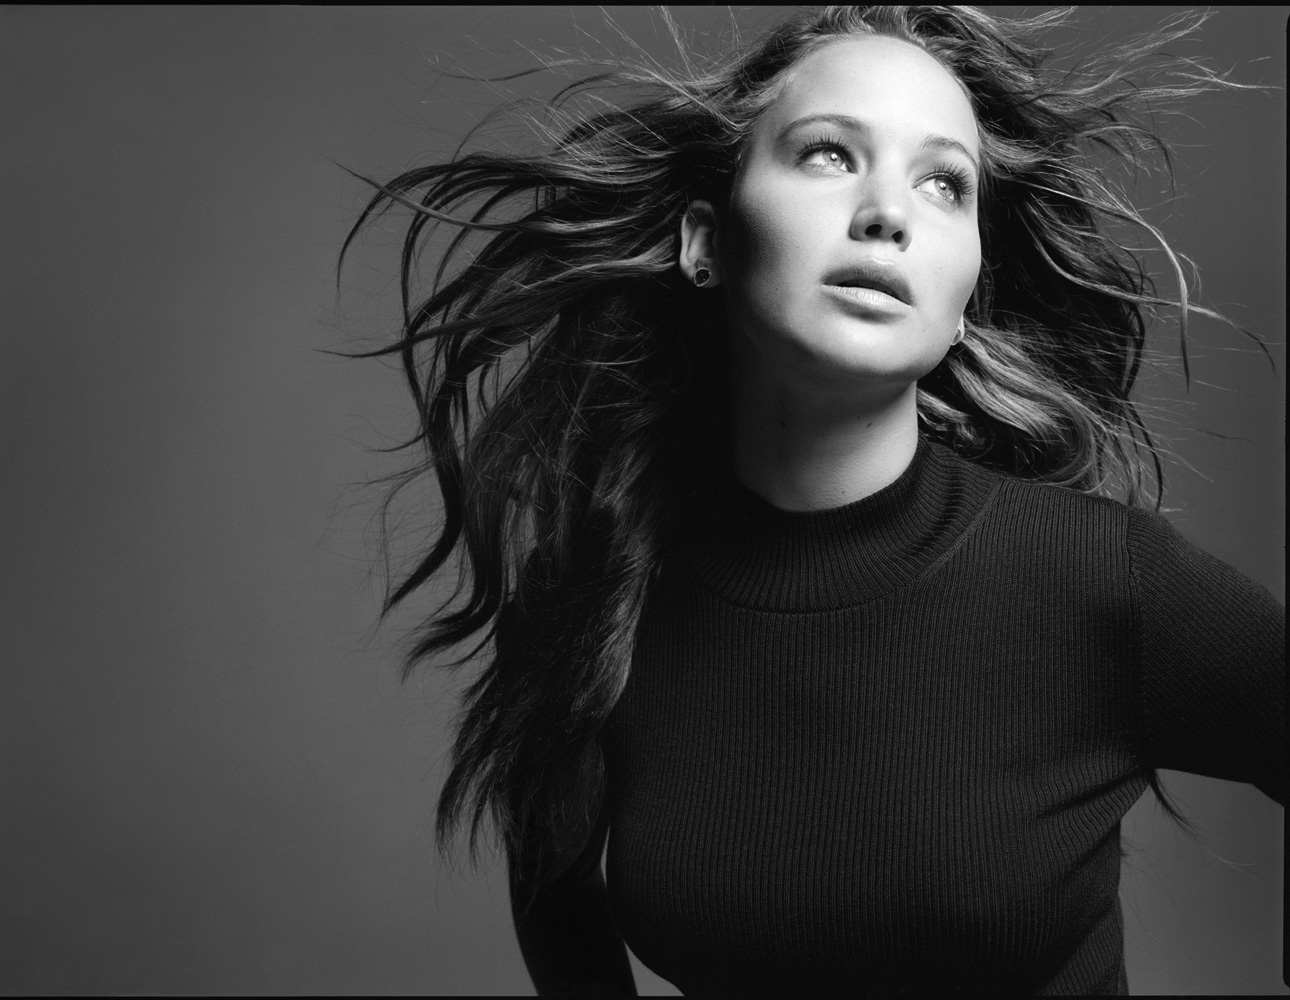 Jennifer Lawrence. From  The 100 Most Influential People in the World,  April 29, 2013 issue.